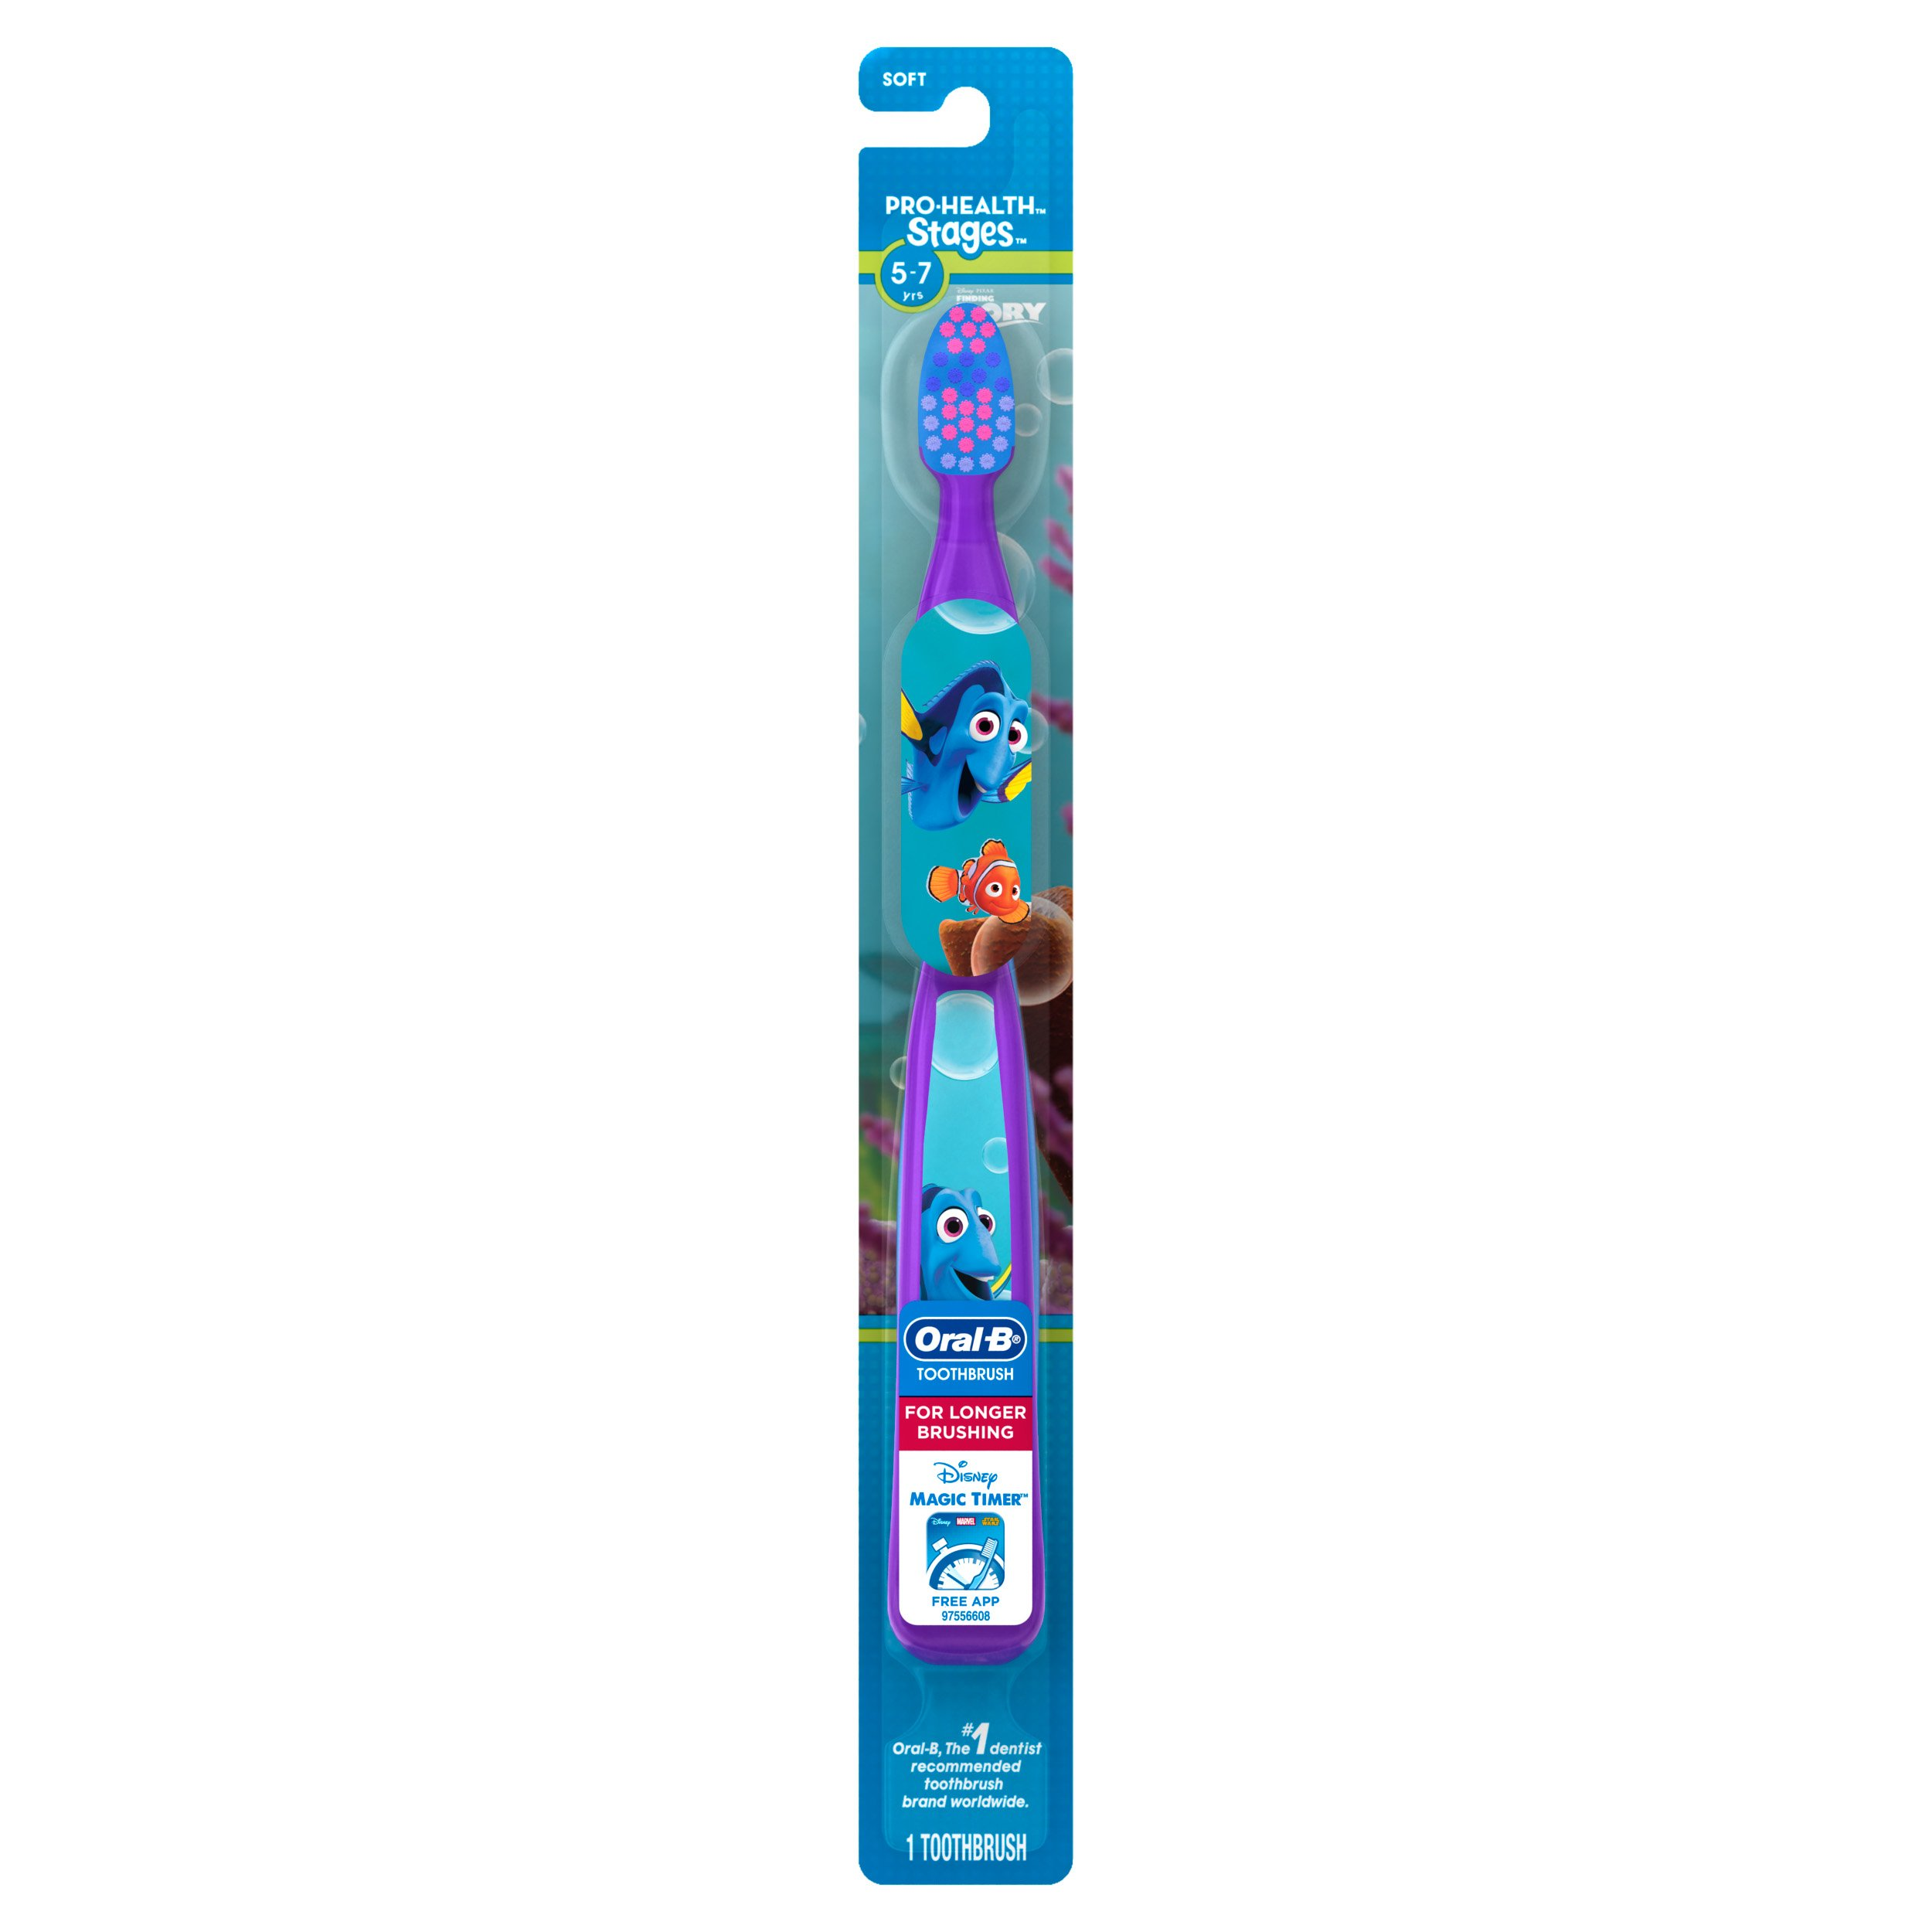 Oral-B Pro-Health Stages Kids Manual Toothbrush featuring Finding Dory, Soft Bristles, 1 ct